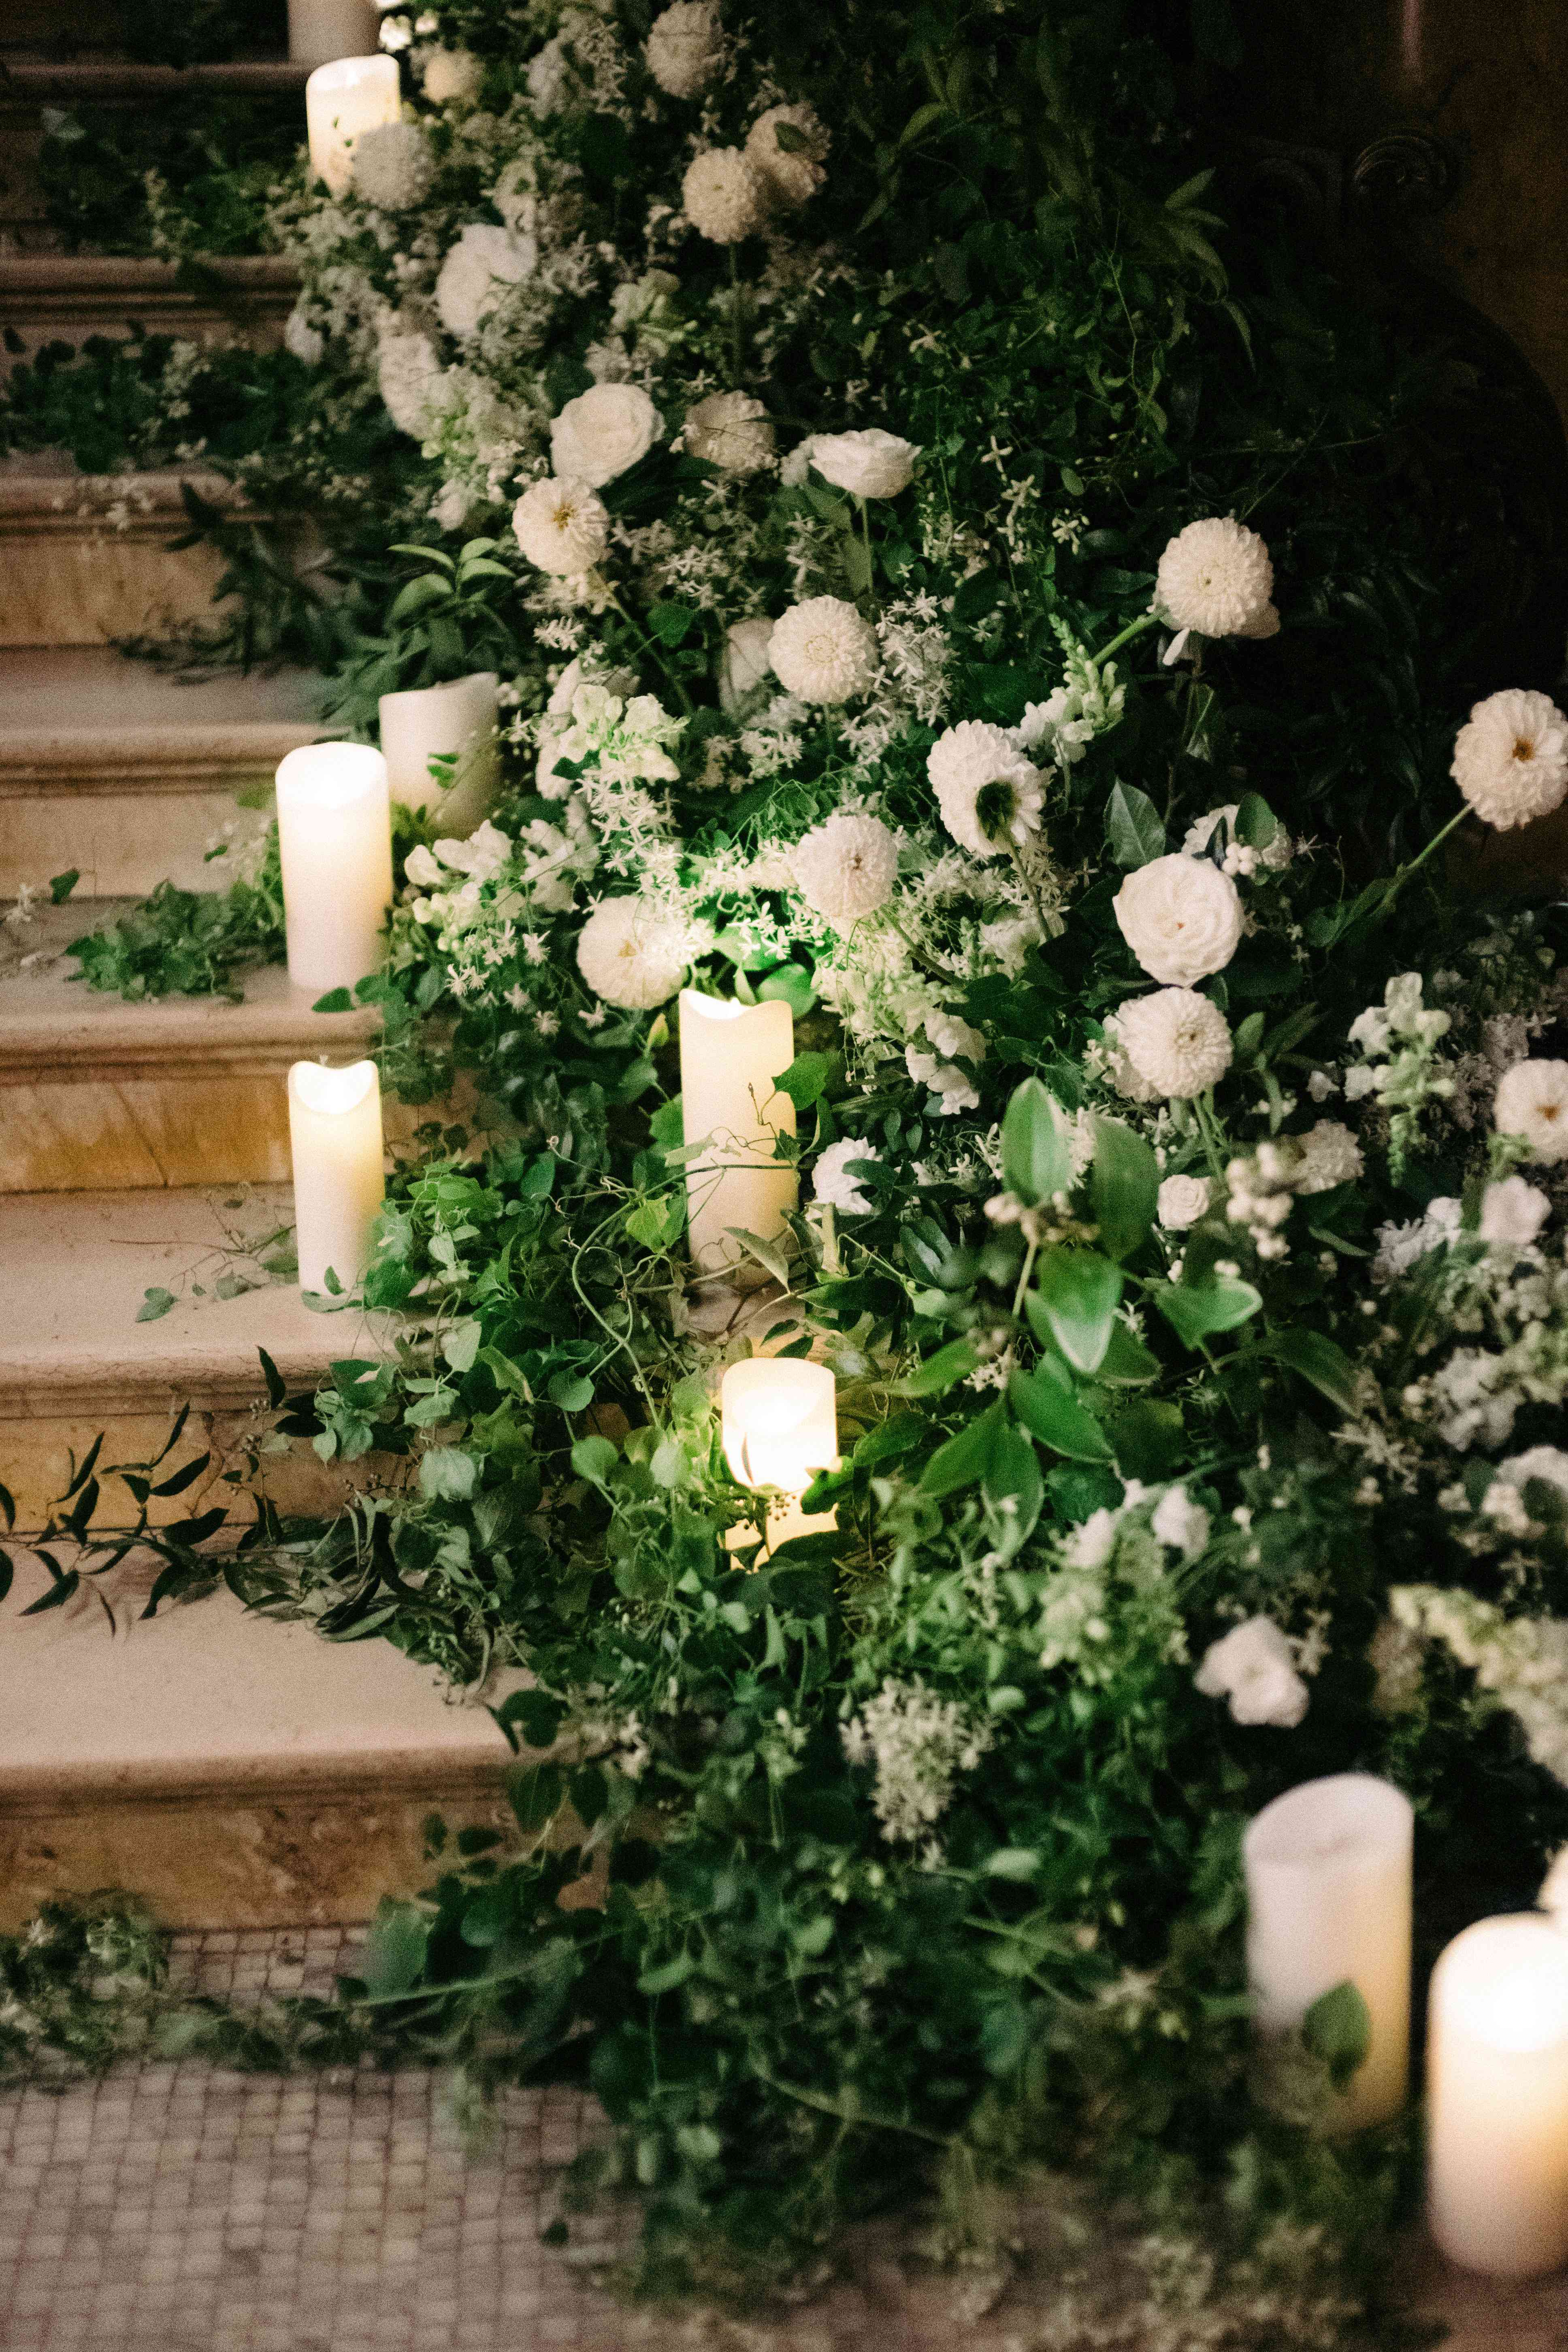 floral and greenery decor with candles